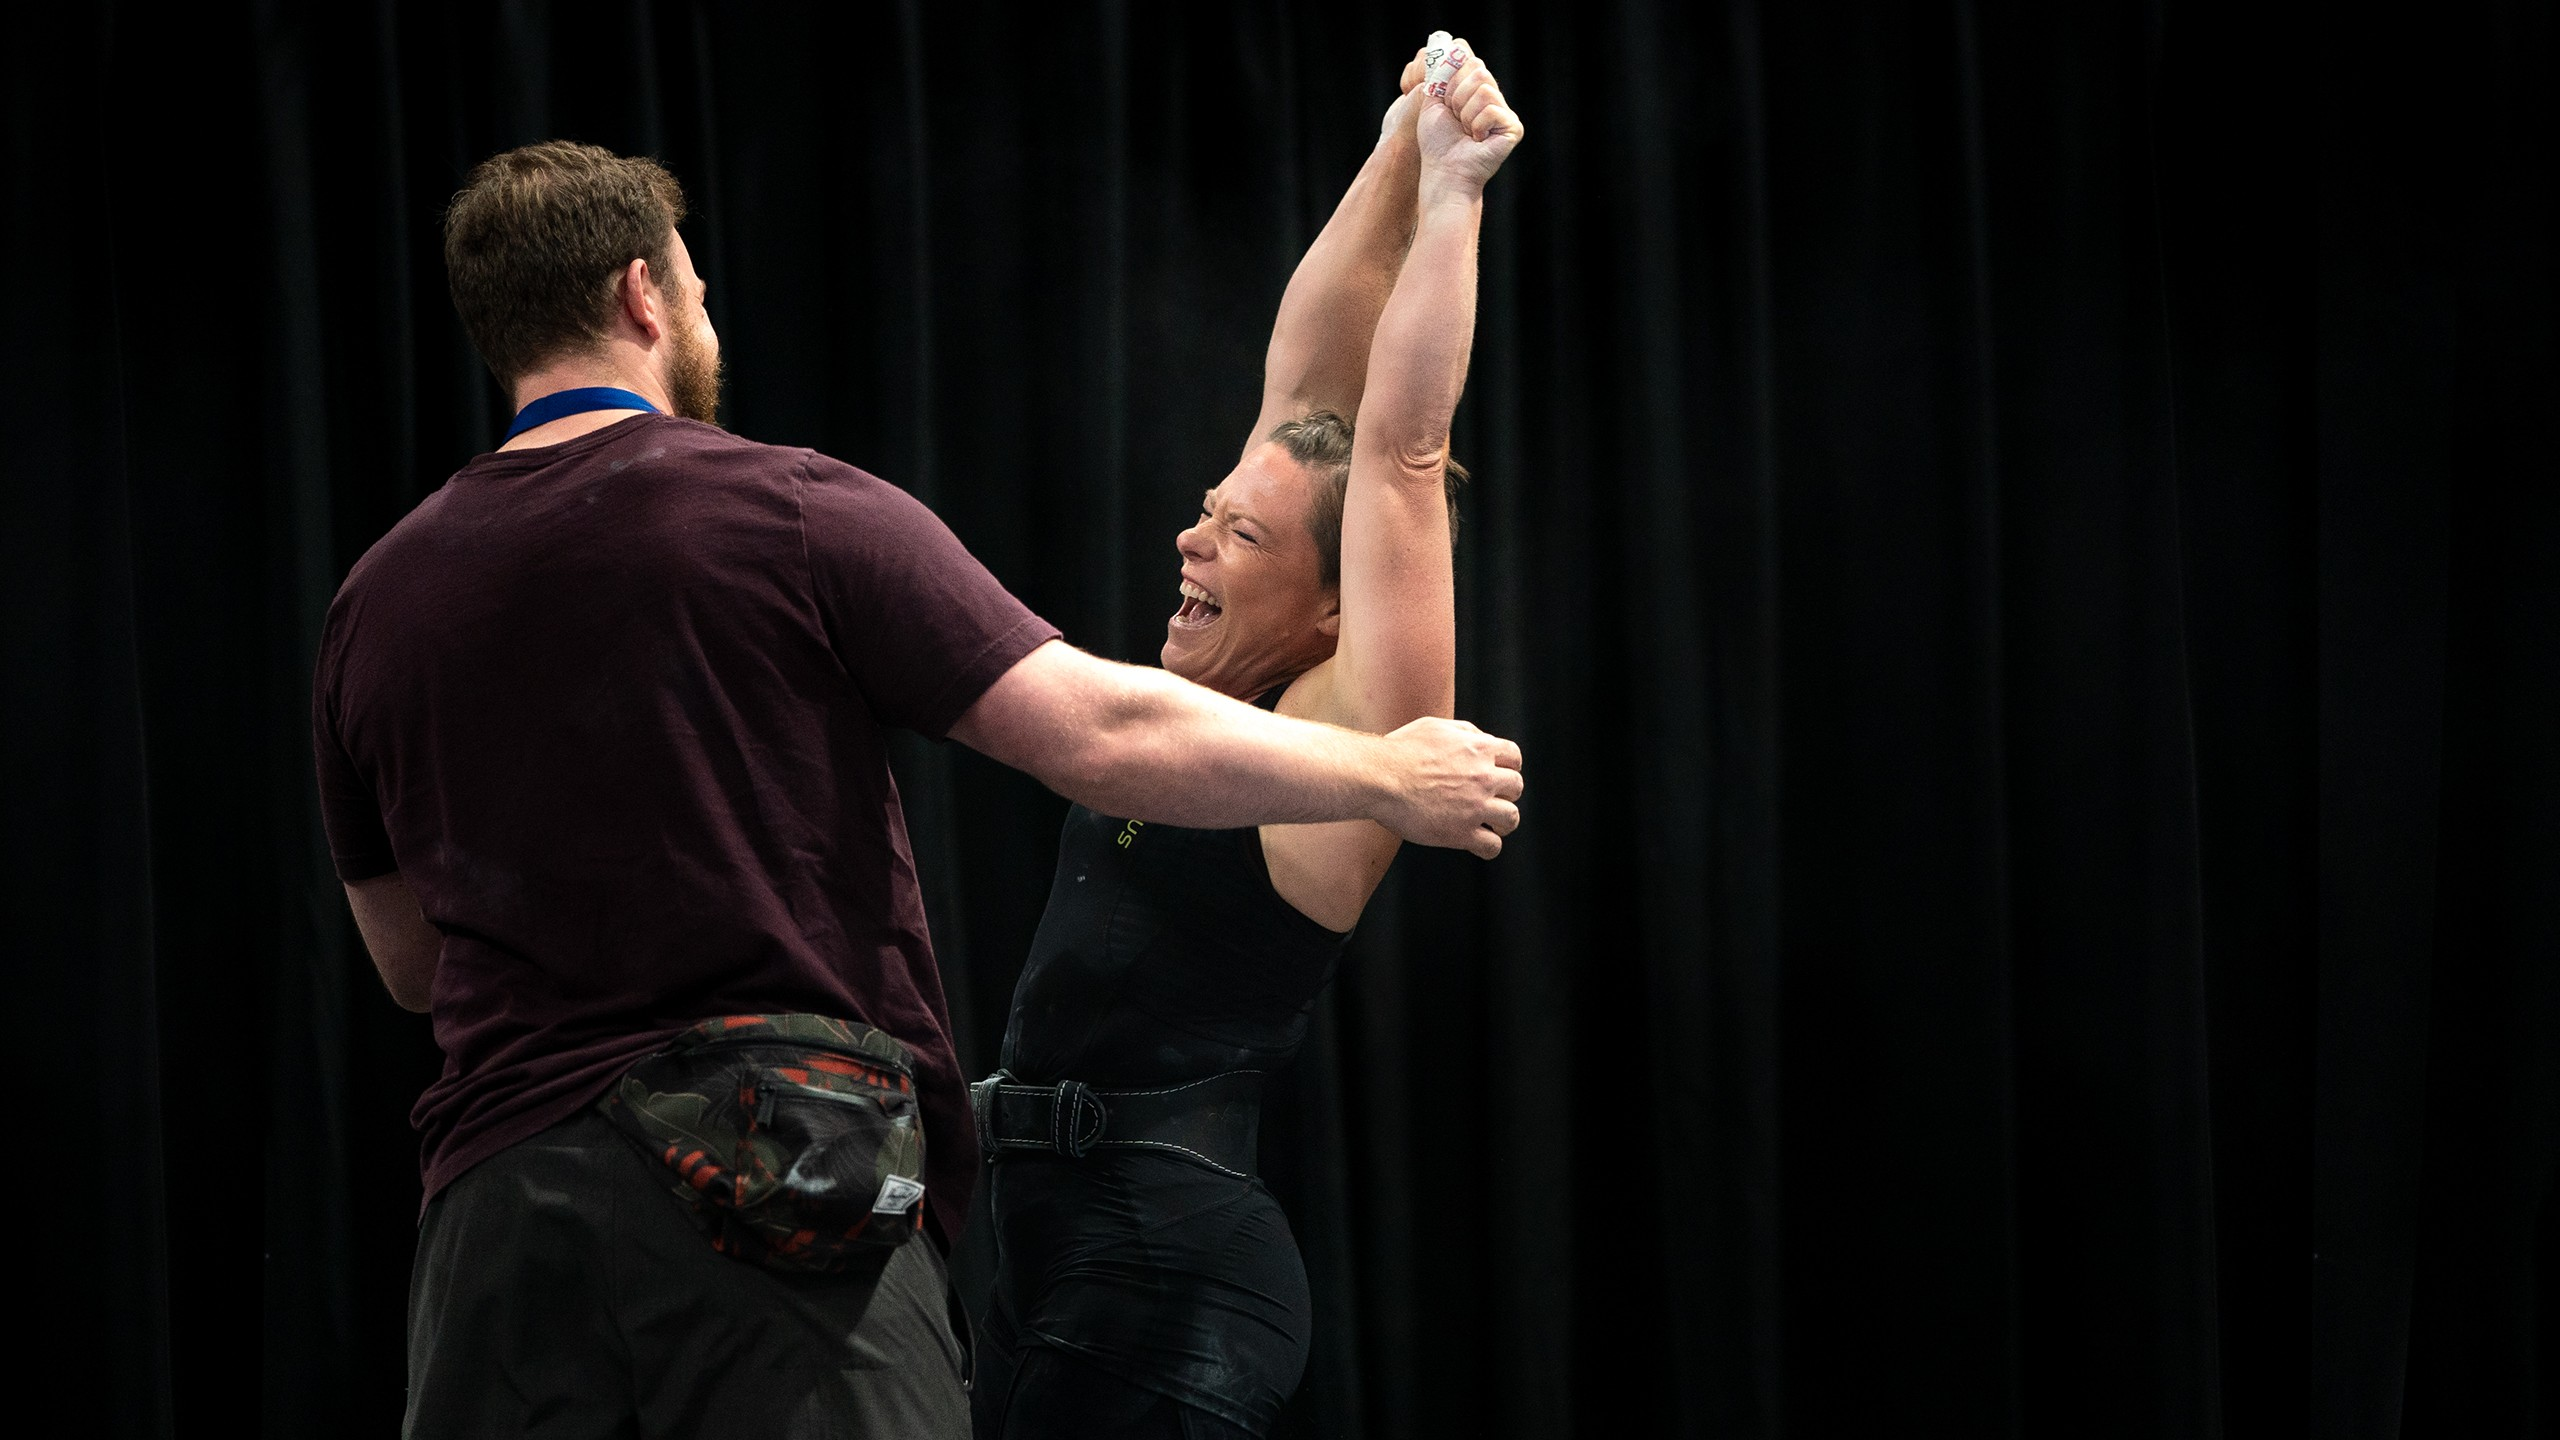 Femalt weightlifter celebrates hands in the air with her coach after winning the championship